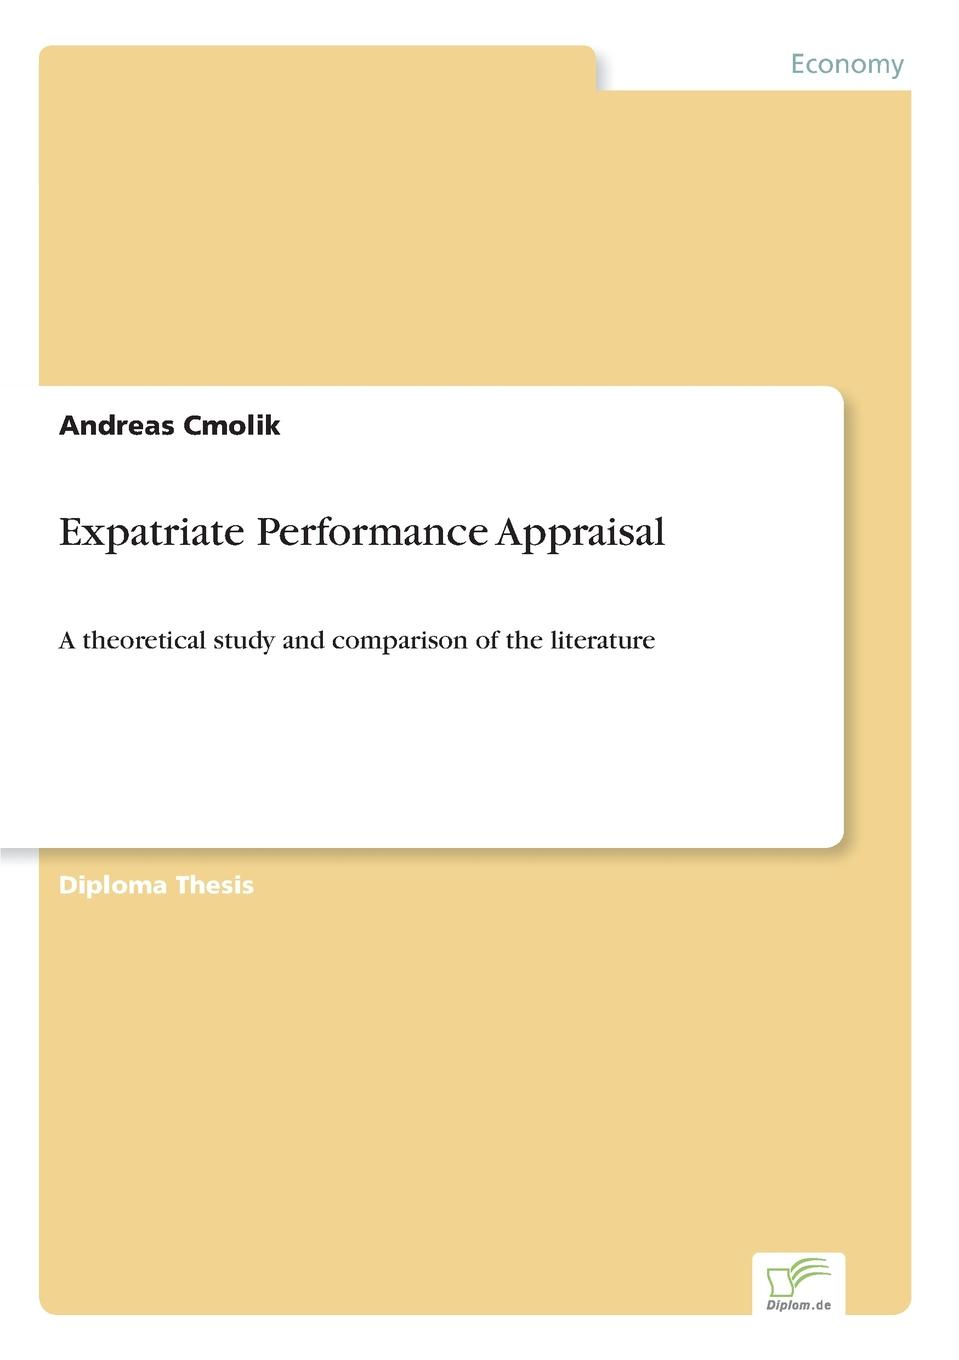 Andreas Cmolik Expatriate Performance Appraisal moseley james l handbook of improving performance in the workplace measurement and evaluation